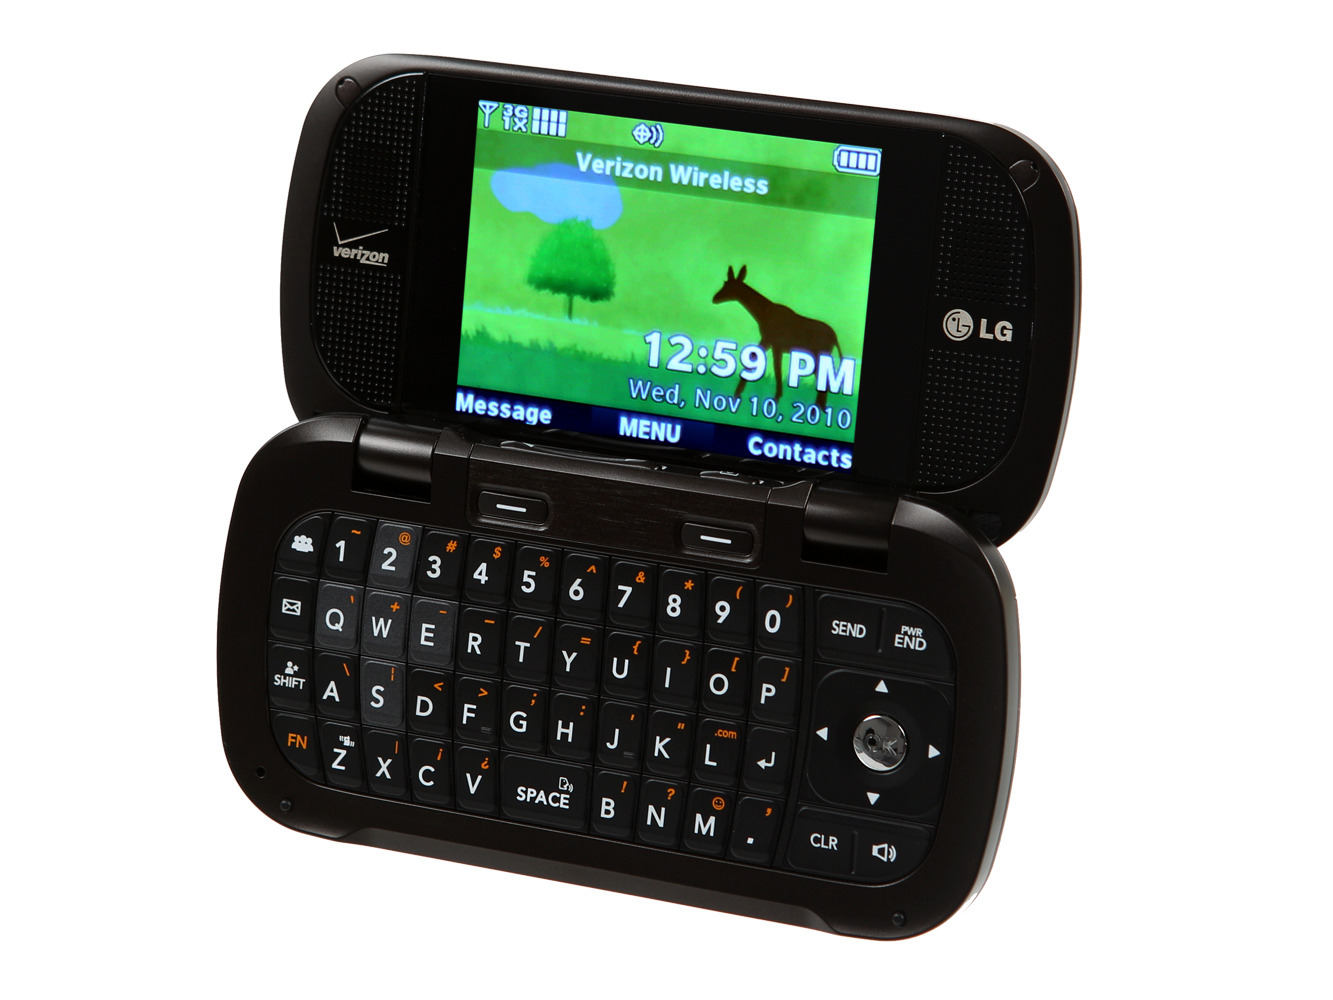 LG Octane (Verizon Wireless)